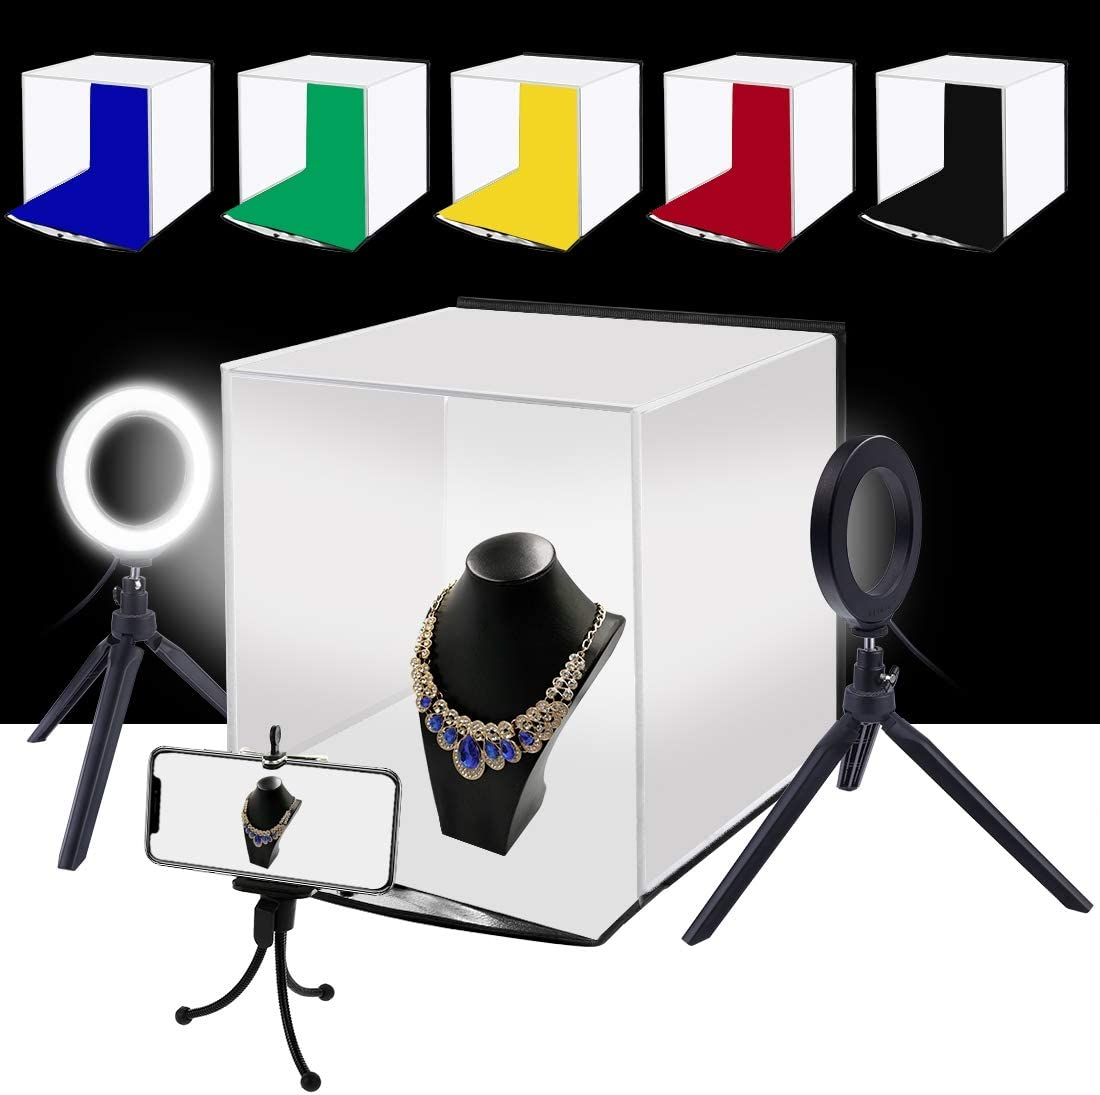 GuiPing 30cm Photo Softbox Portable Folding Studio Shooting Tent Box Size: 30cm x 30cm x 30cm Durable Red, Green, Yellow, Blue, White, Black 4.6 inch Ring LED Light Kits with 6 Colors Backdrops